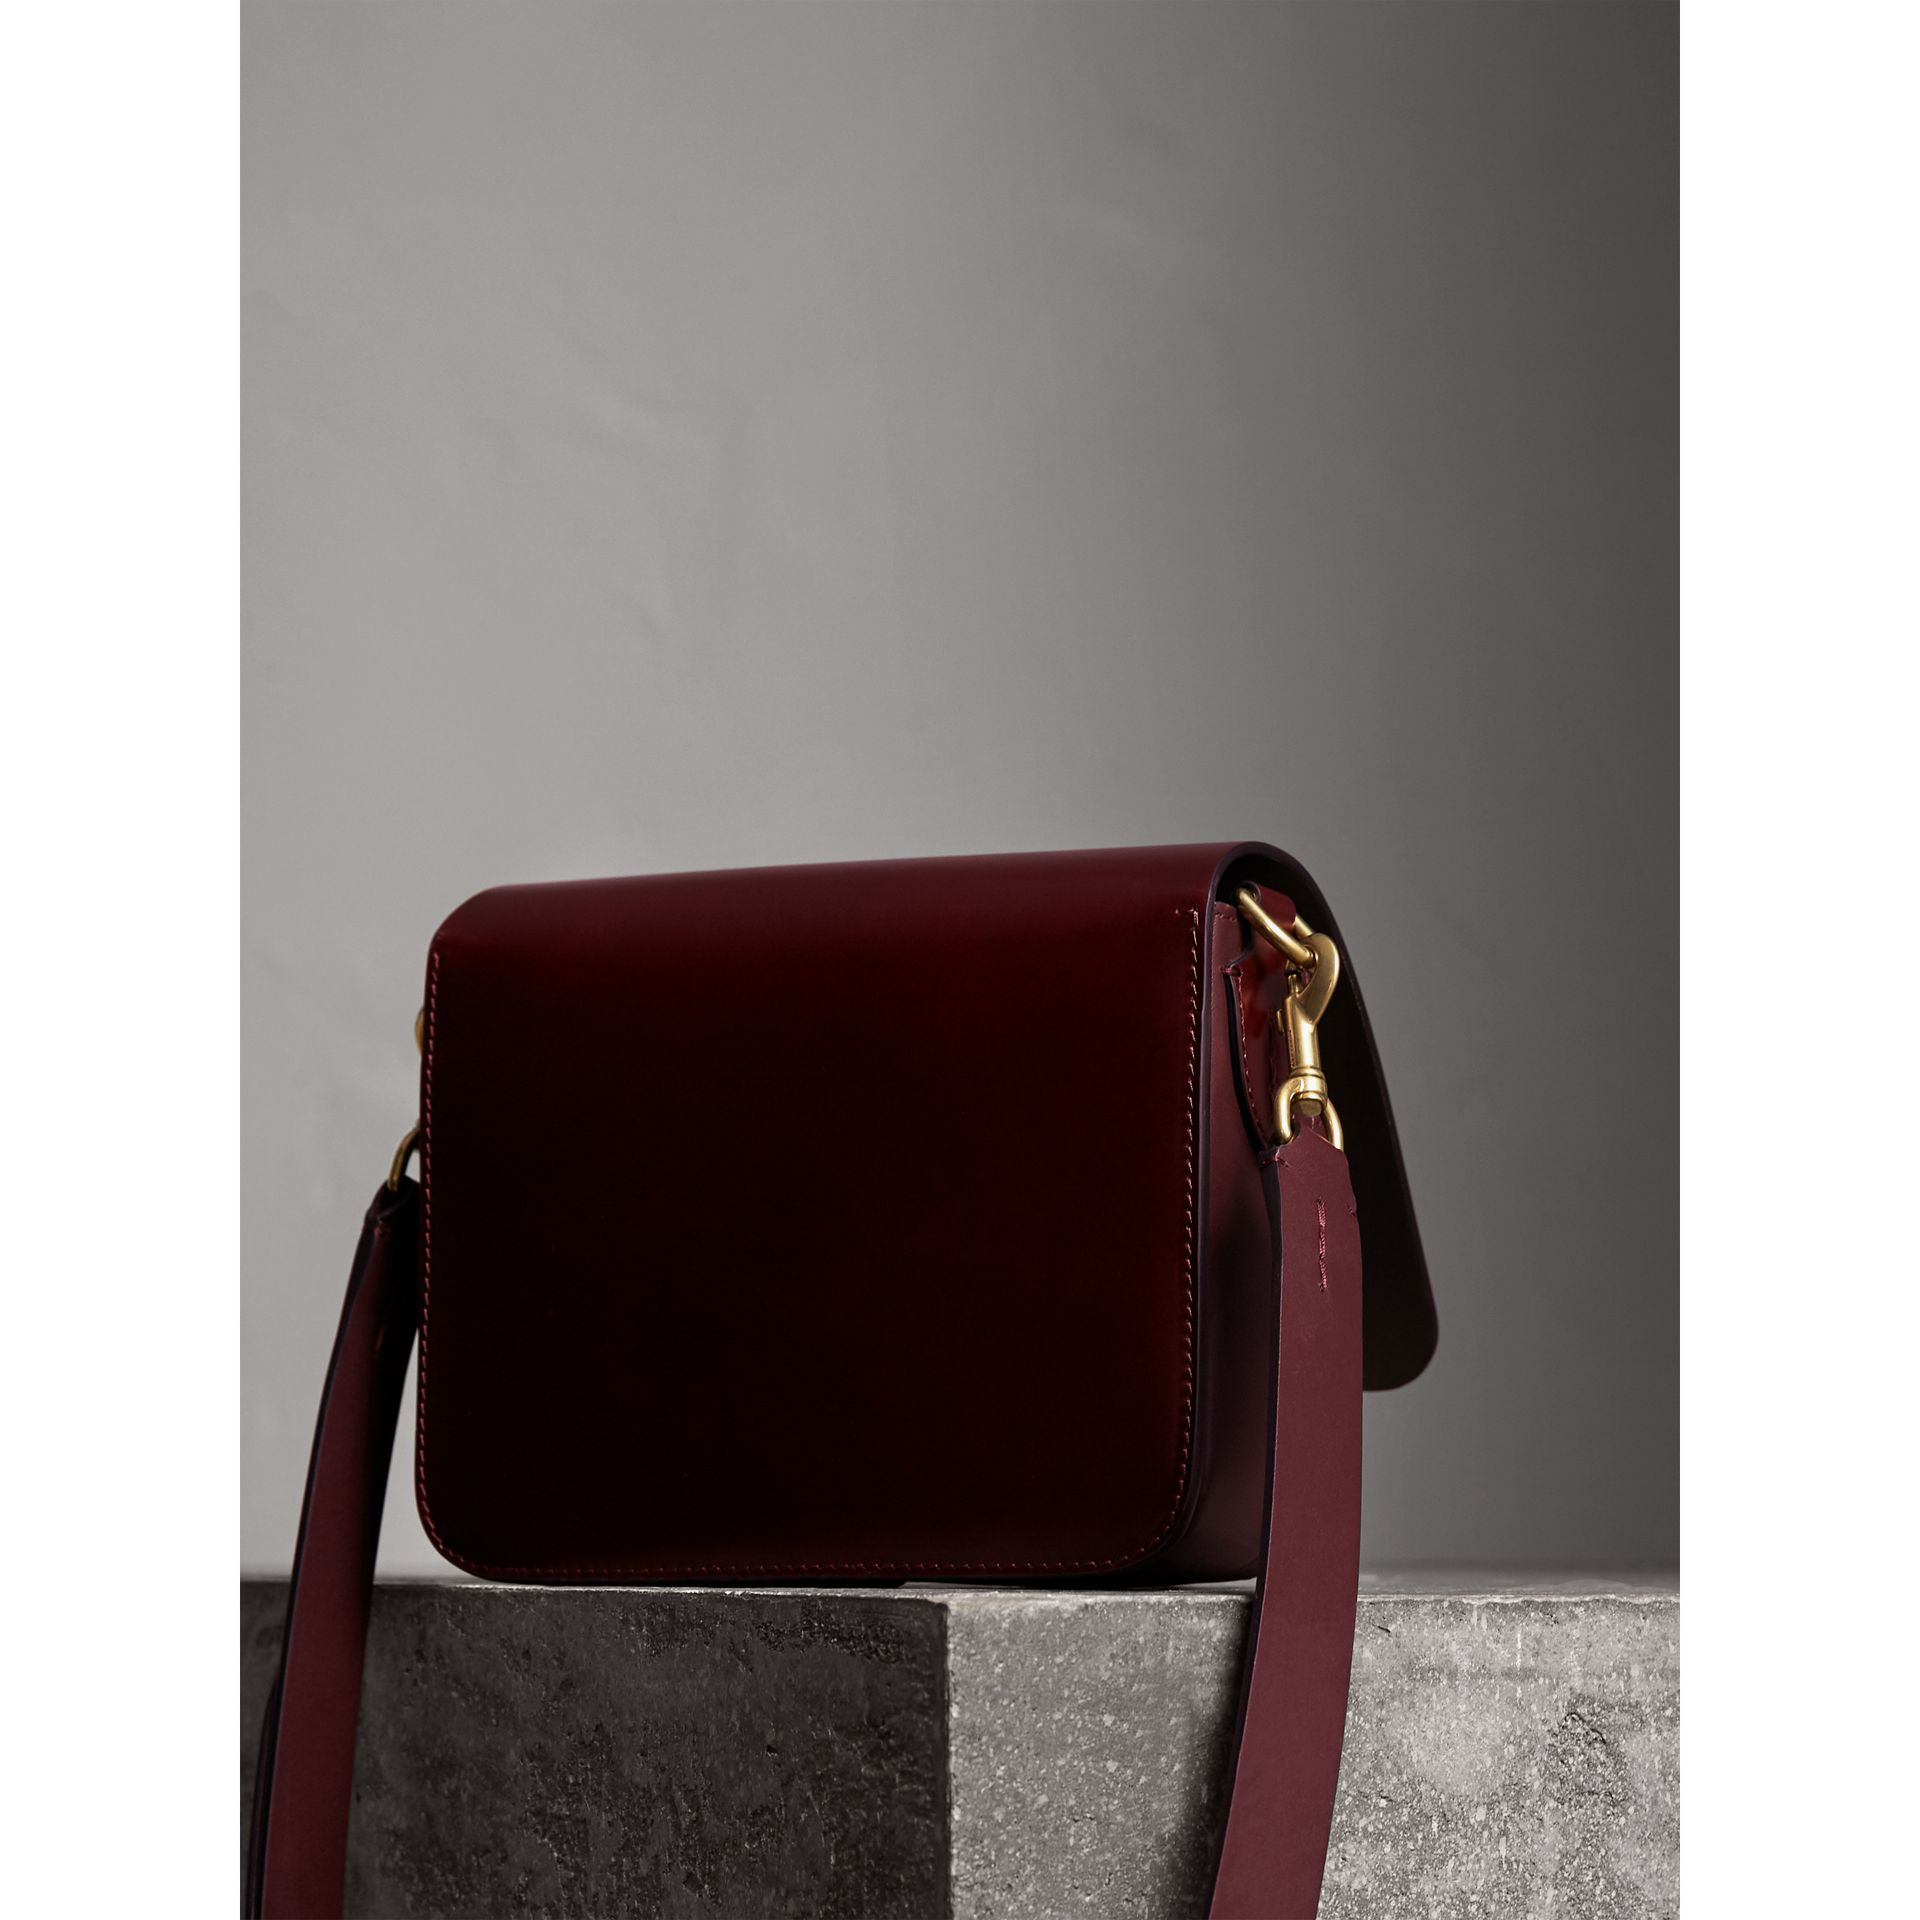 The Square Satchel in Bridle Leather in Deep Claret - Women | Burberry - gallery image 3